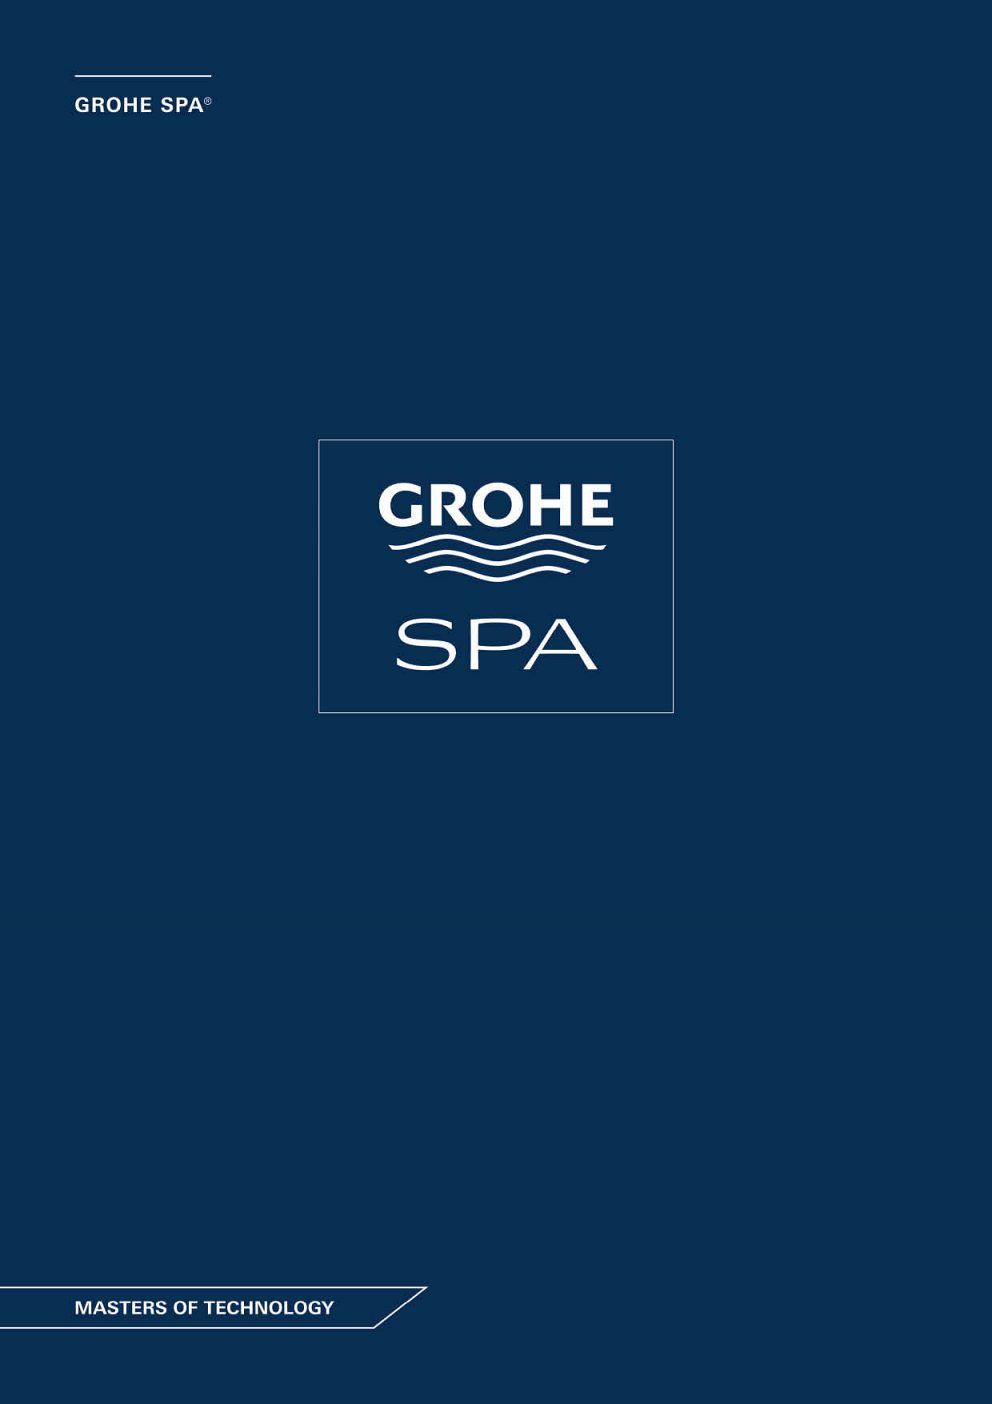 Grohe - SPA